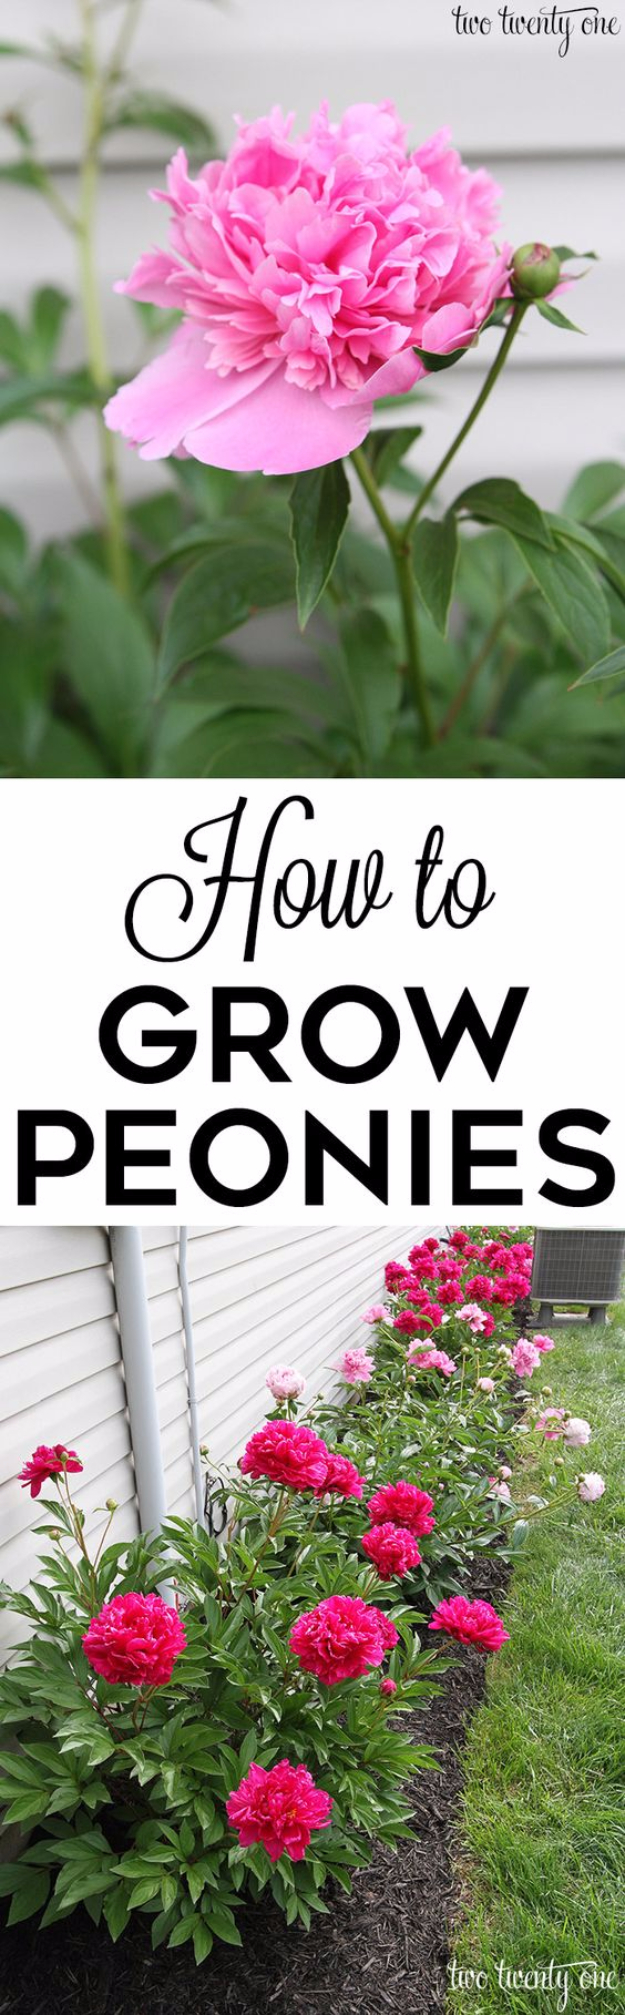 DIY Spring Gardening Projects - Growing Peonies For Spring - Cool and Easy Planting Tips for Spring Garden - Step by Step Tutorials for Growing Seeds, Plants, Vegetables and Flowers in You Yard - DIY Project Ideas for Women and Men - Creative and Quick Backyard Ideas For Summer